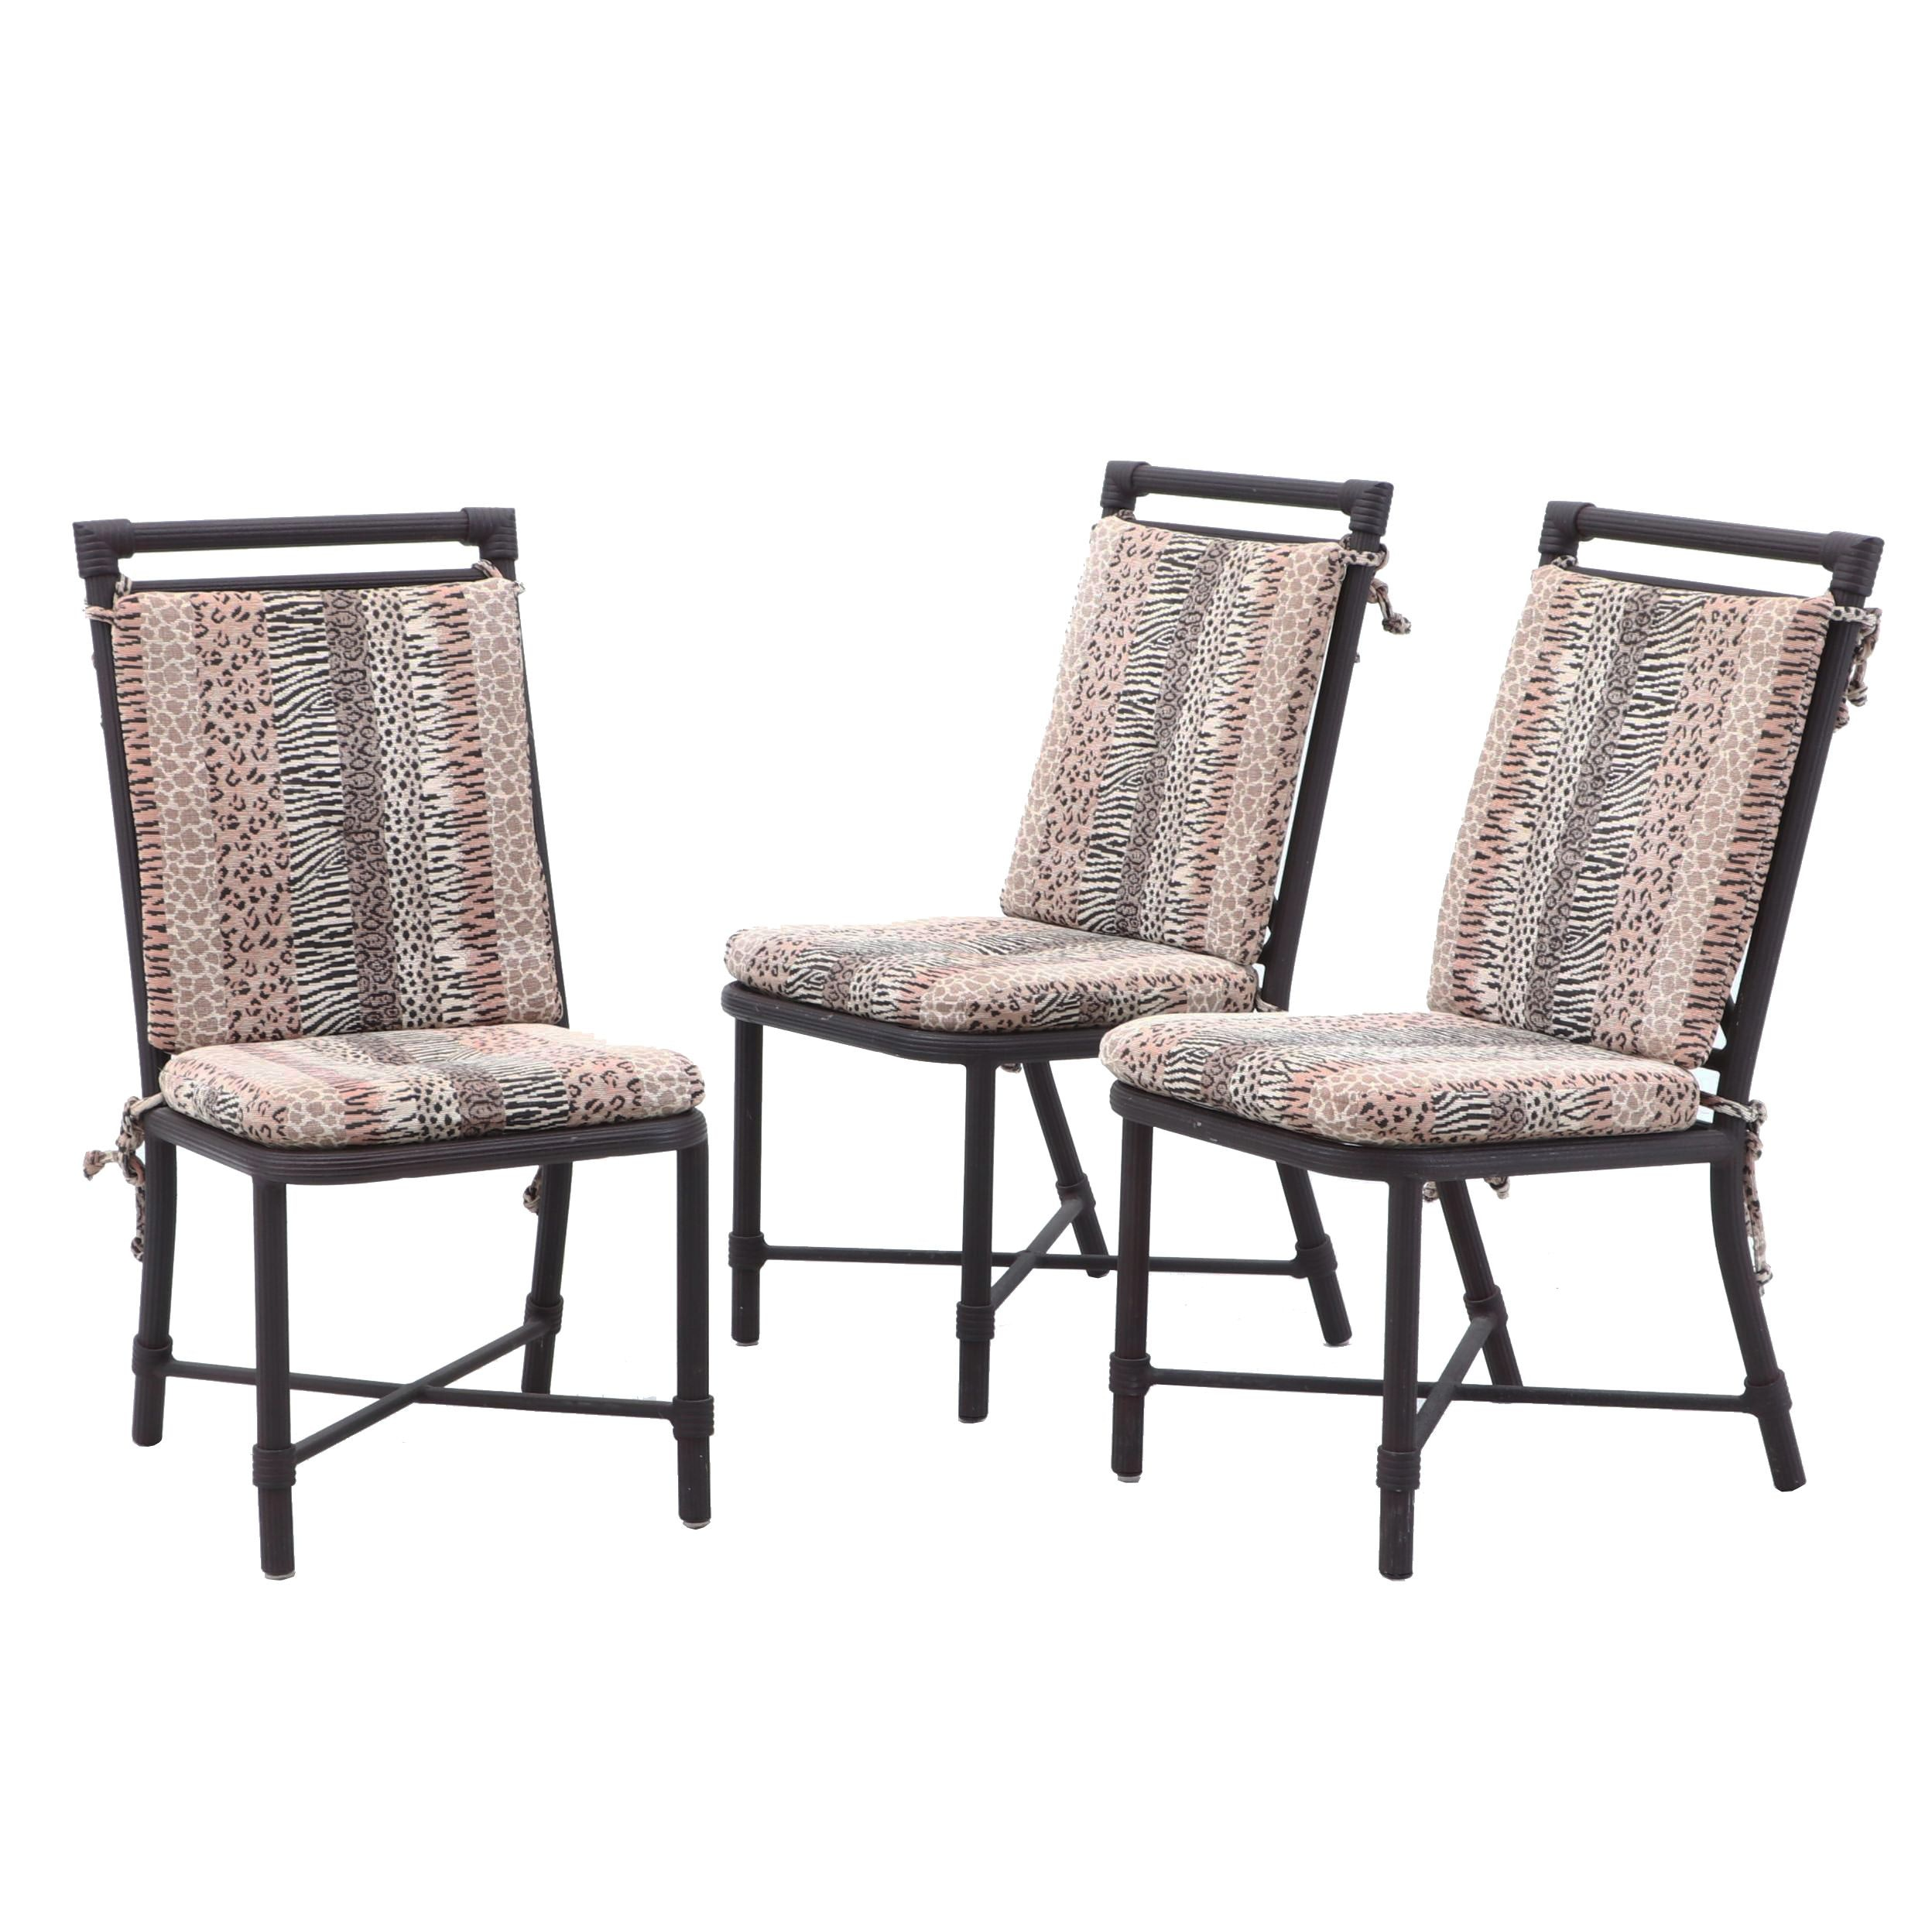 Three Metal Side Chairs with Cushions by Pompeii Furniture